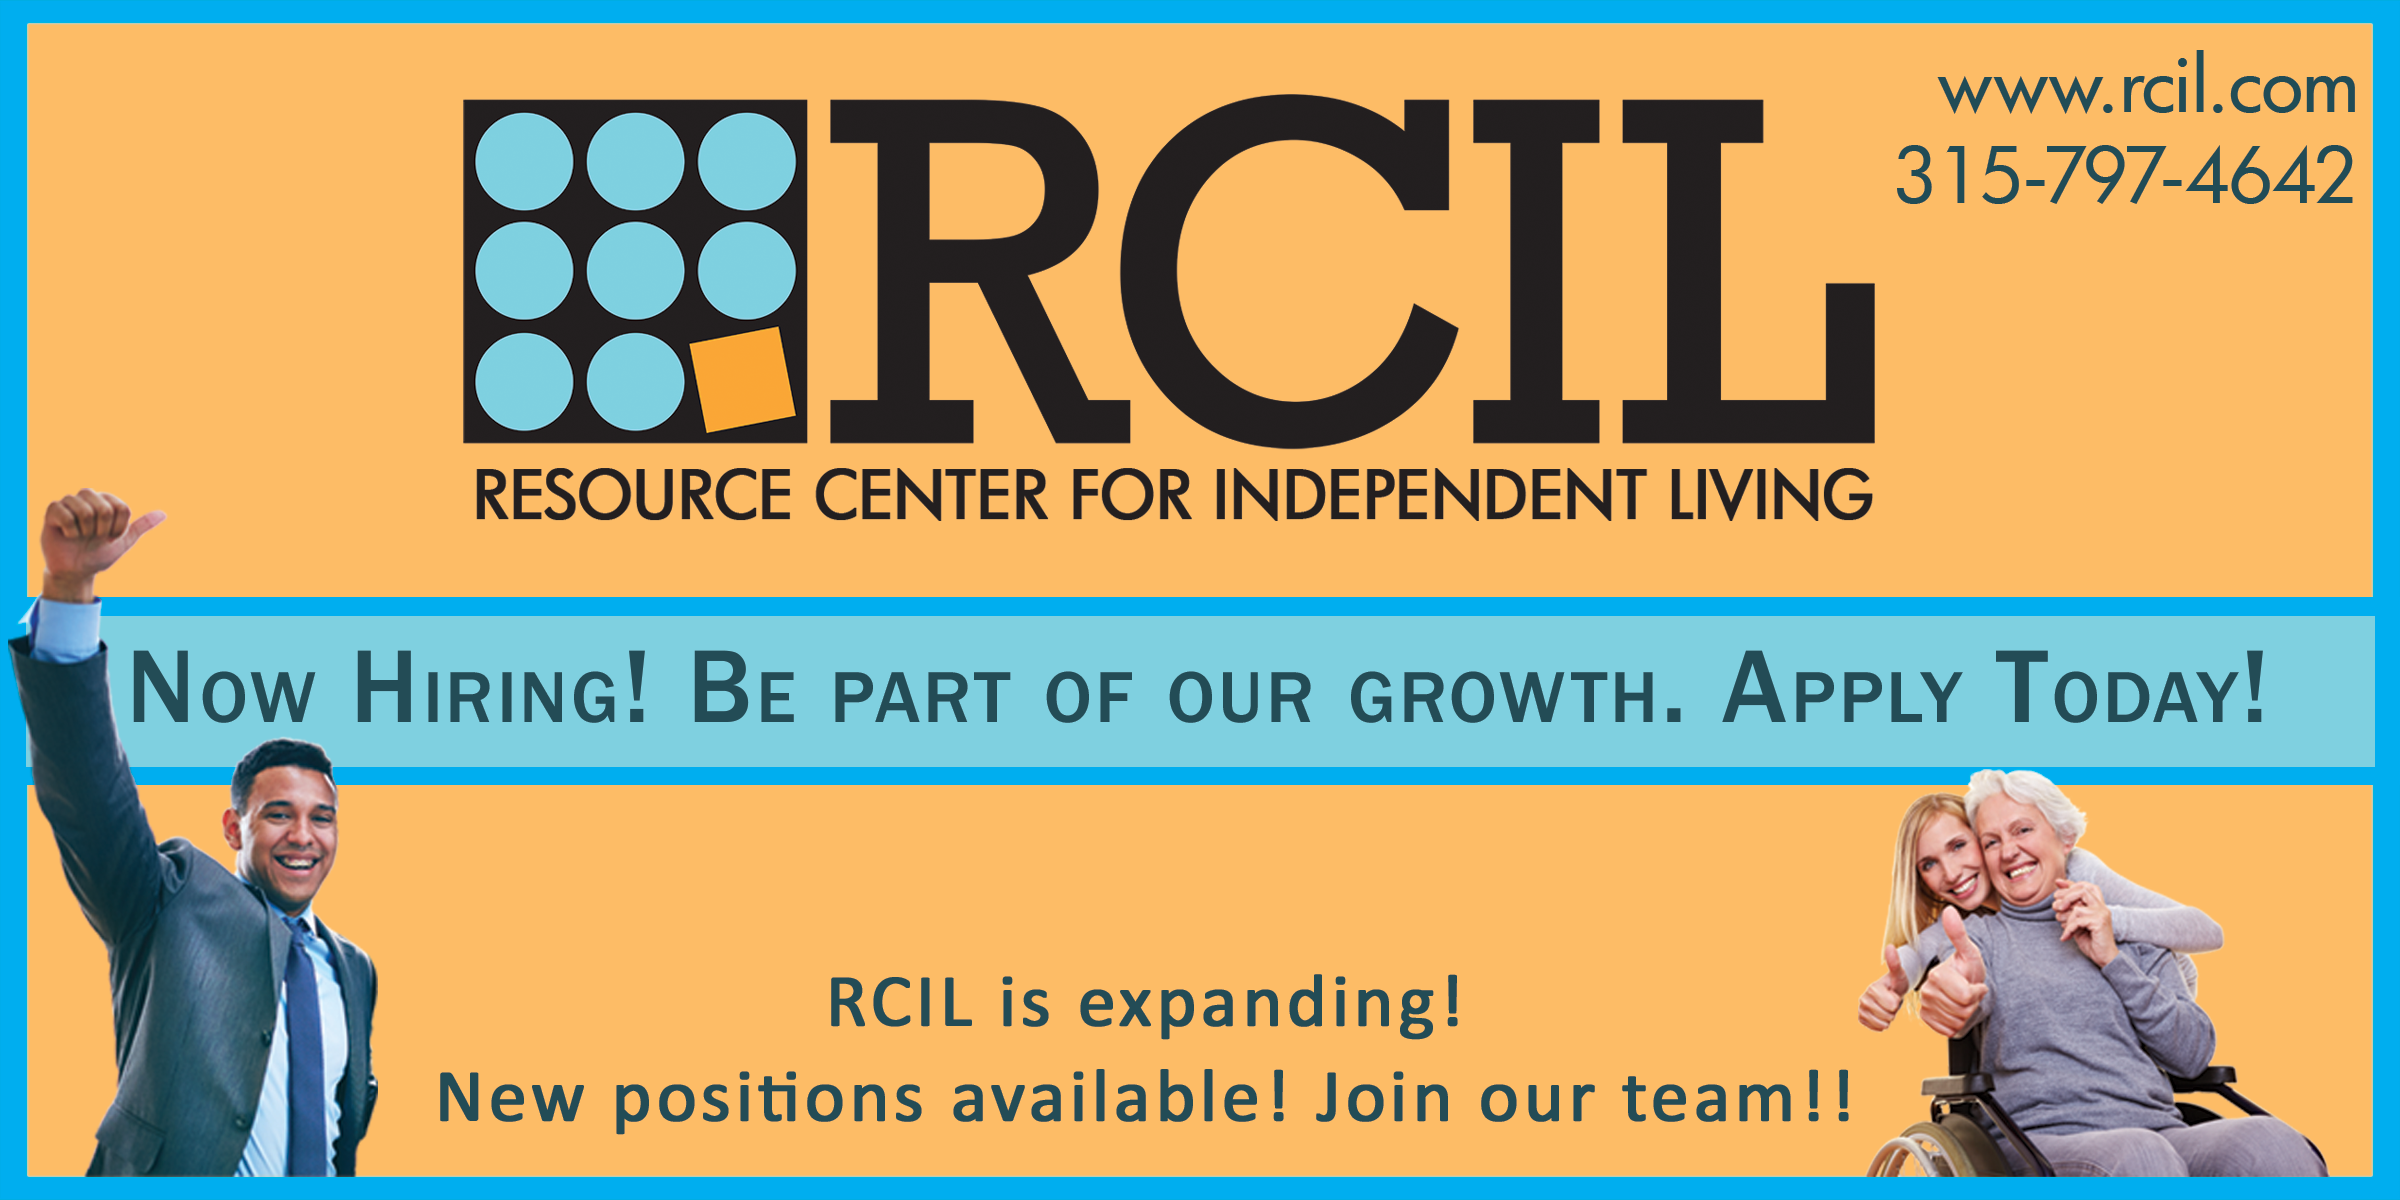 Careers job openings resource center independent living rcil rcil is now hiring be part of our growth click here to apply today falaconquin